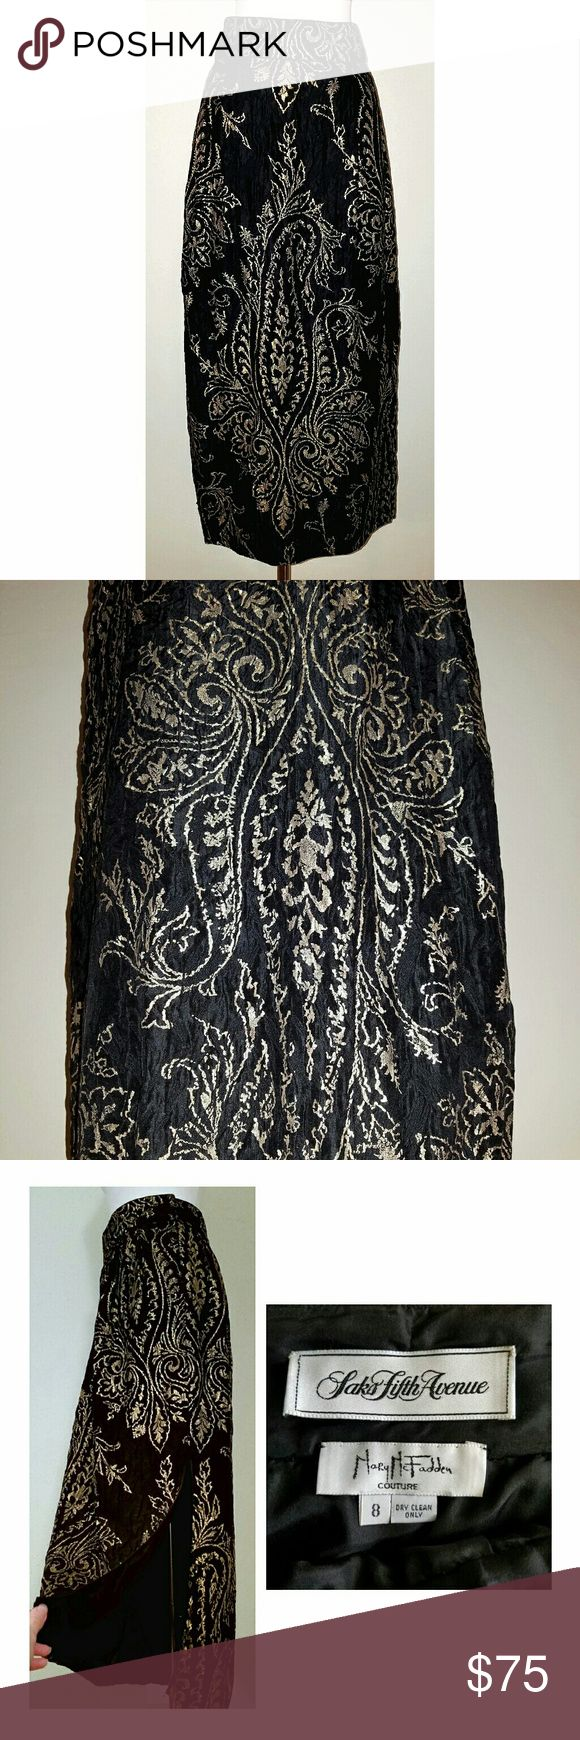 "Vtg MaryMcFadden Couture HighWaist BlackGold Skirt Saks Fifth Avenue vintage. Gorgeous gold paisley design on black. High side slit. High waisted. Fabric has puckered dimpled look (see photo), lightweight w/ slight sheen. Full silky lining. Side zipper and double hook closure. Length- 35.75"" (bottom hem)- 20"" (top of side slit), Waist- 28"" (higher than natural waist), Hips- 44"". Dry clean only. No fabric tag. GREAT condition for vintage item (no tears, no stains, gold paisley rubbing off in…"